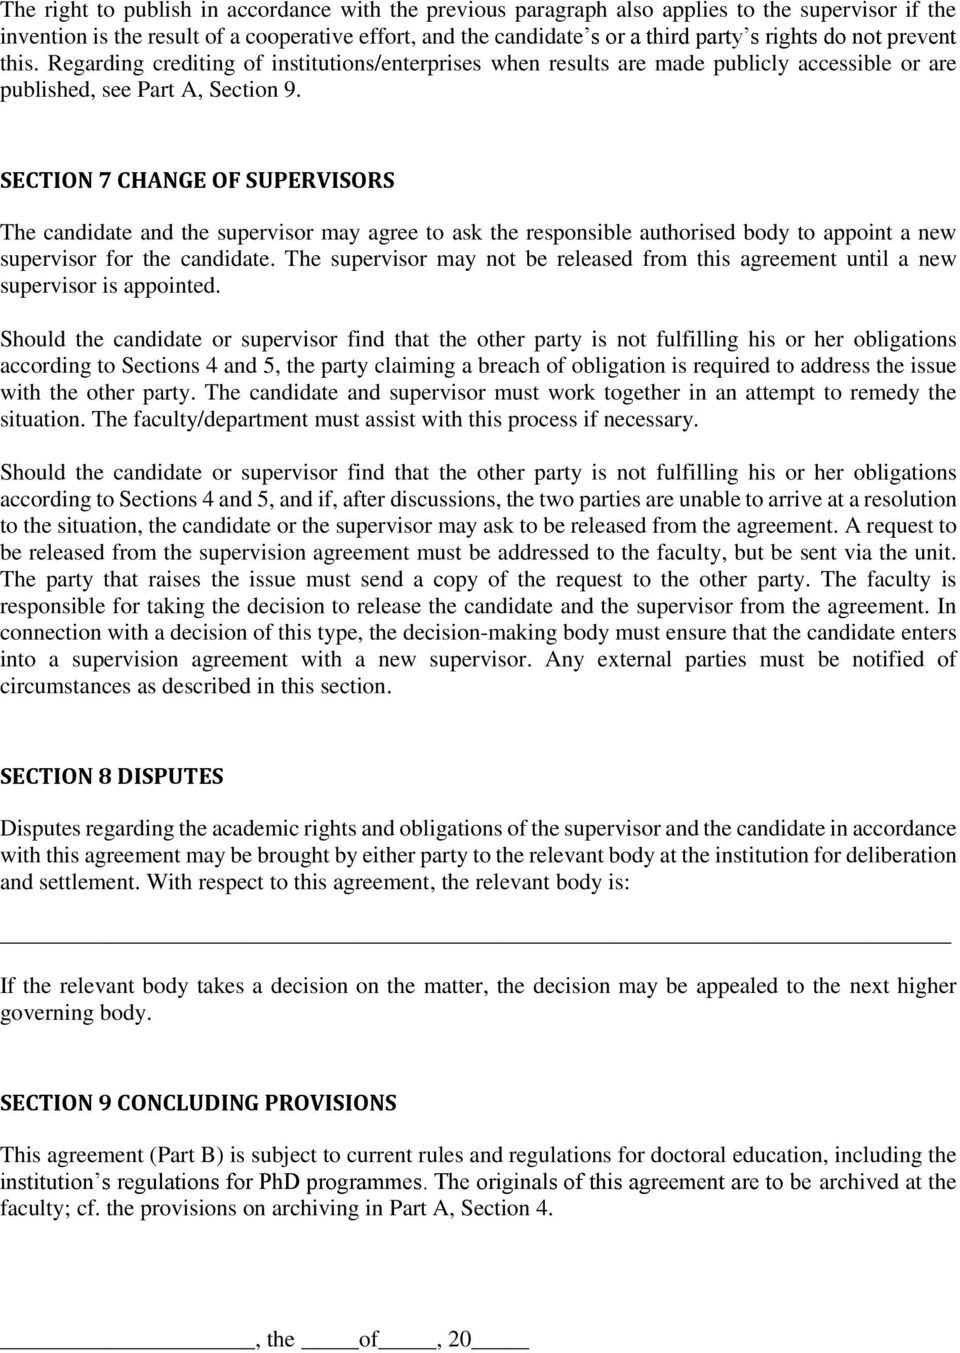 SECTION 7 CHANGE OF SUPERVISORS The candidate and the supervisor may agree to ask the responsible authorised body to appoint a new supervisor for the candidate.